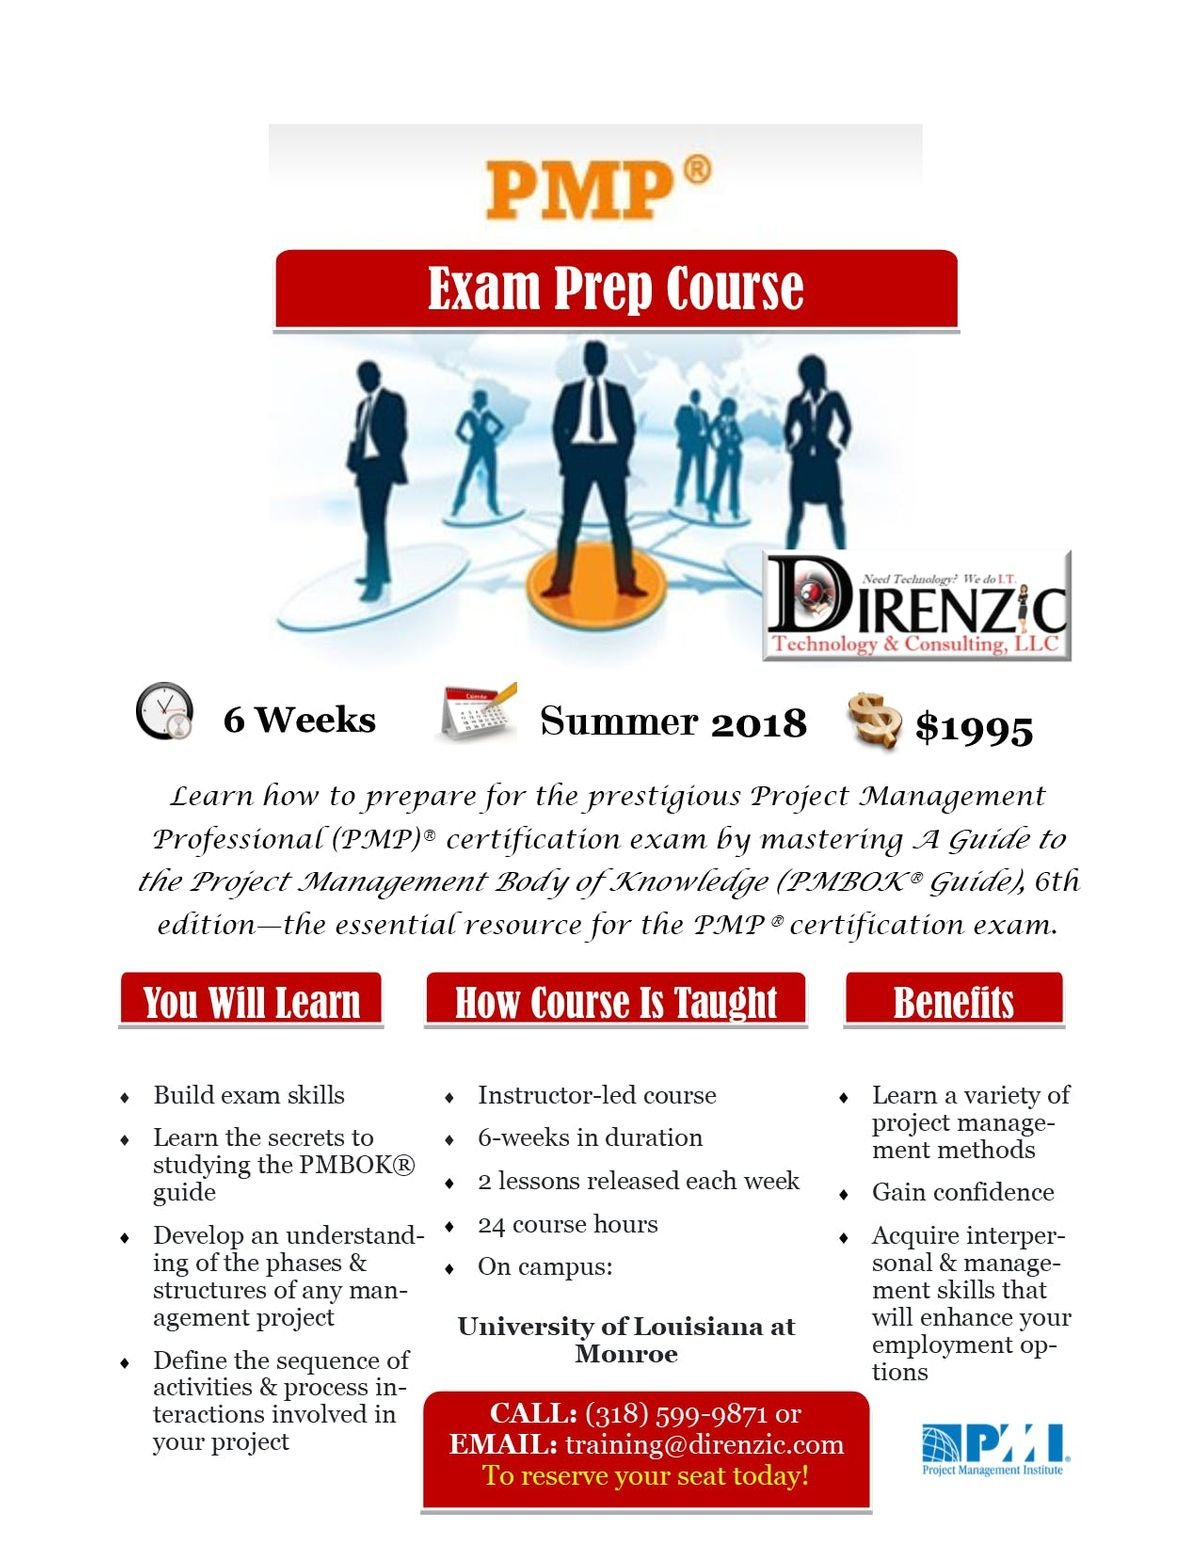 project management exam Explore microsoft project or prince2 and prepare for certification as a pmp finish projects on time and under budget using project management skills learn how to schedule, create tasks, and.